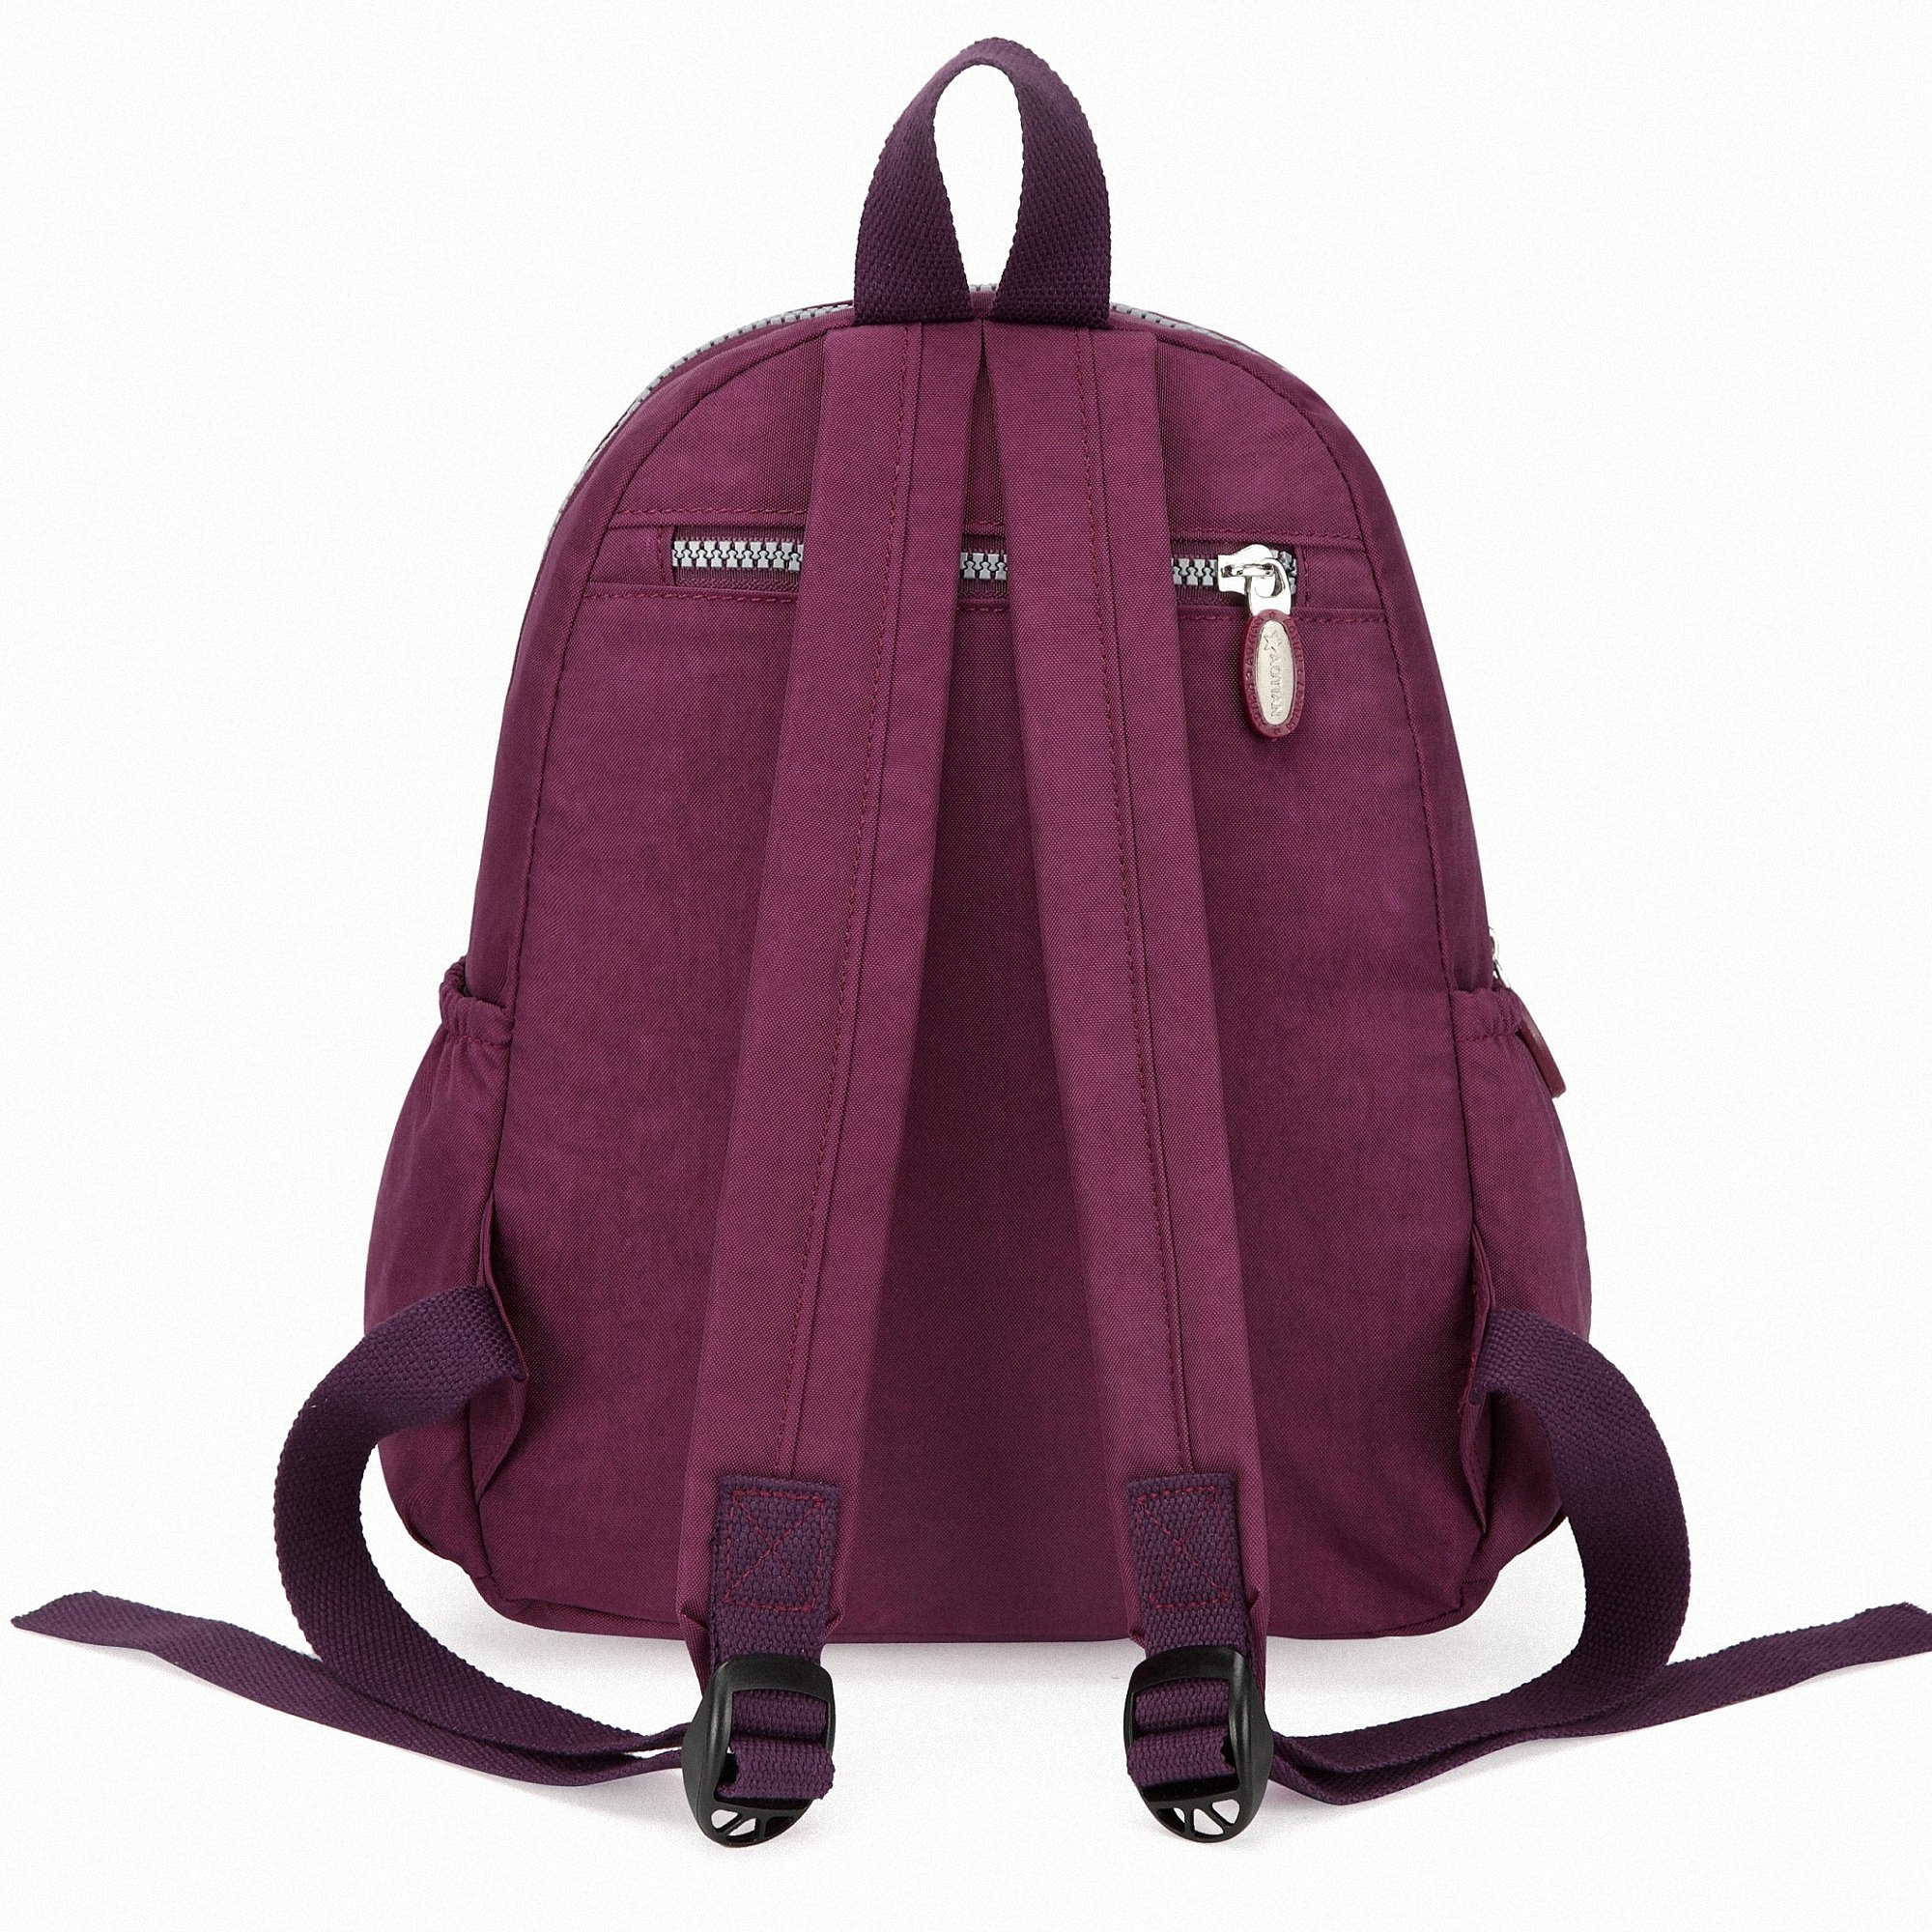 9266a8ed2f AOTIAN Mini Nylon Women Backpacks Casual Lightweight Strong Small Packback  Daypack for Girls Cycling Hiking Camping Travel Outdoor Purple -  EU3973purple ...